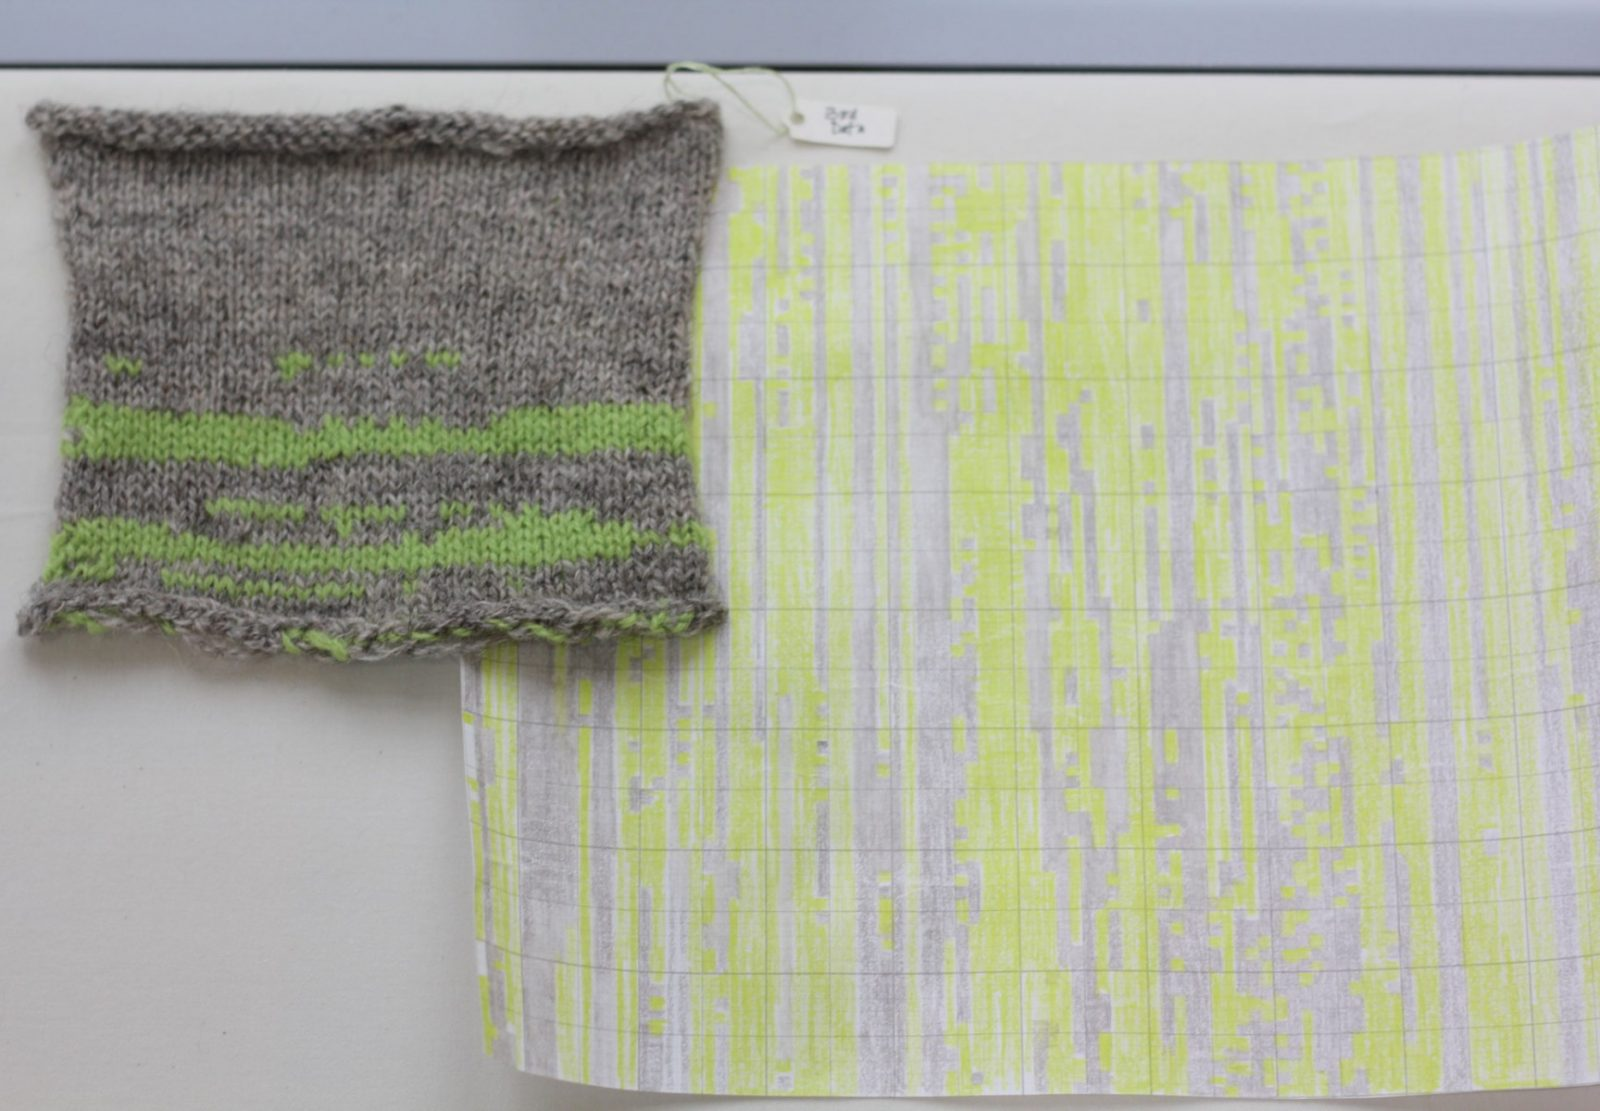 Deirdre Nelson, Bird Data chart & knitted sample